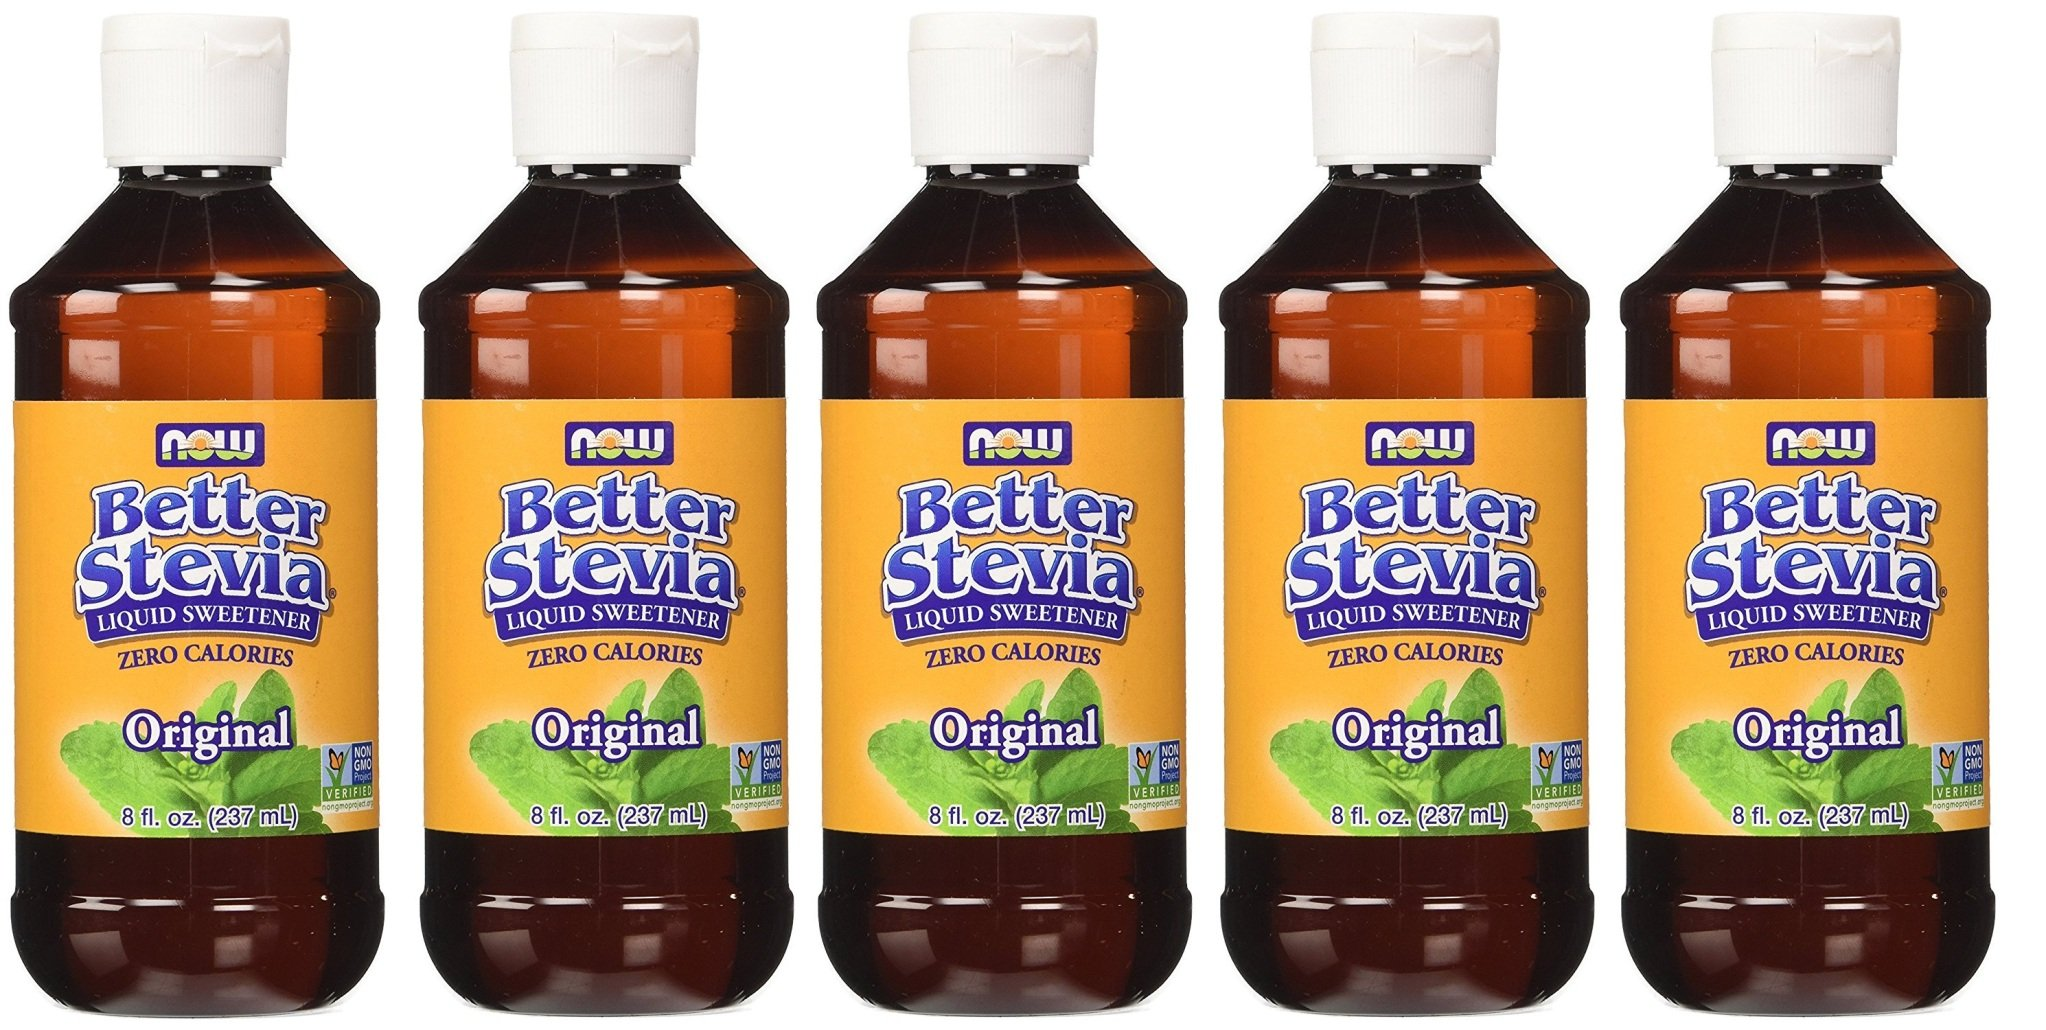 NOW Foods BetterStevia Liquid rCmLrT 8 oz (Pack of 5) by